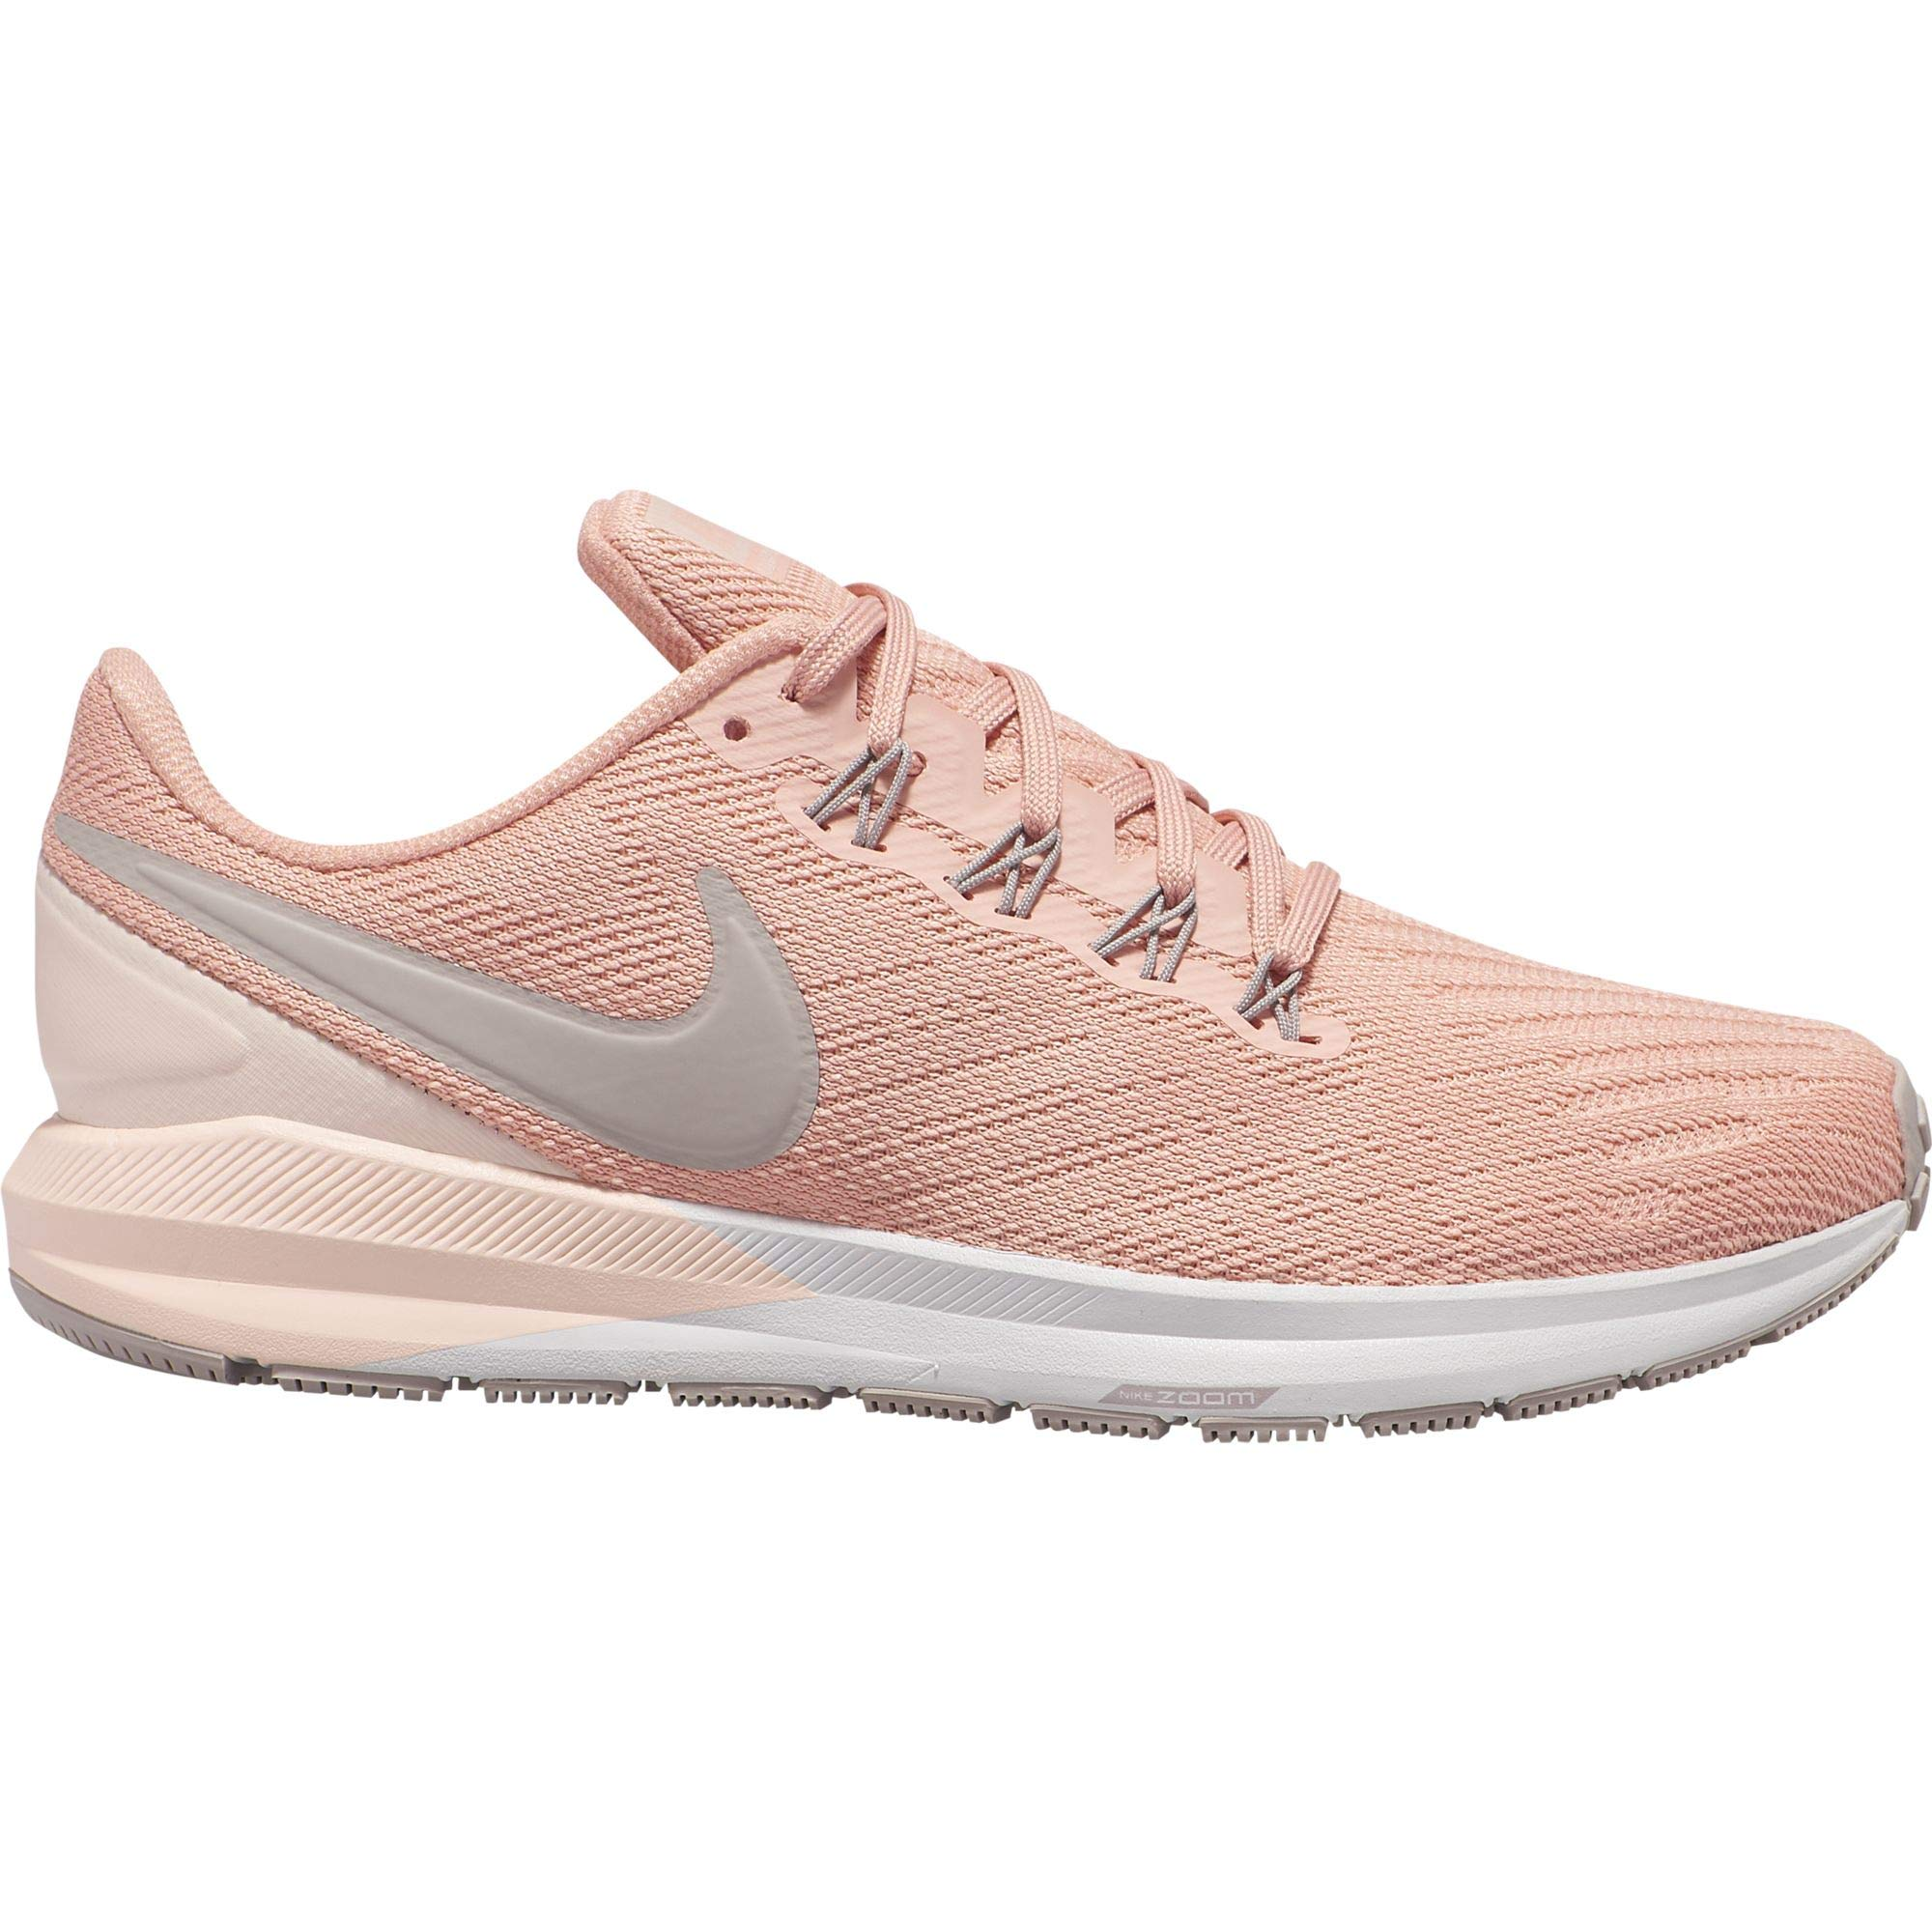 Details about W NIKE AIR ZOOM STRUCTURE 22 PINK QUARTZPUMICE WASHED CORAL 9